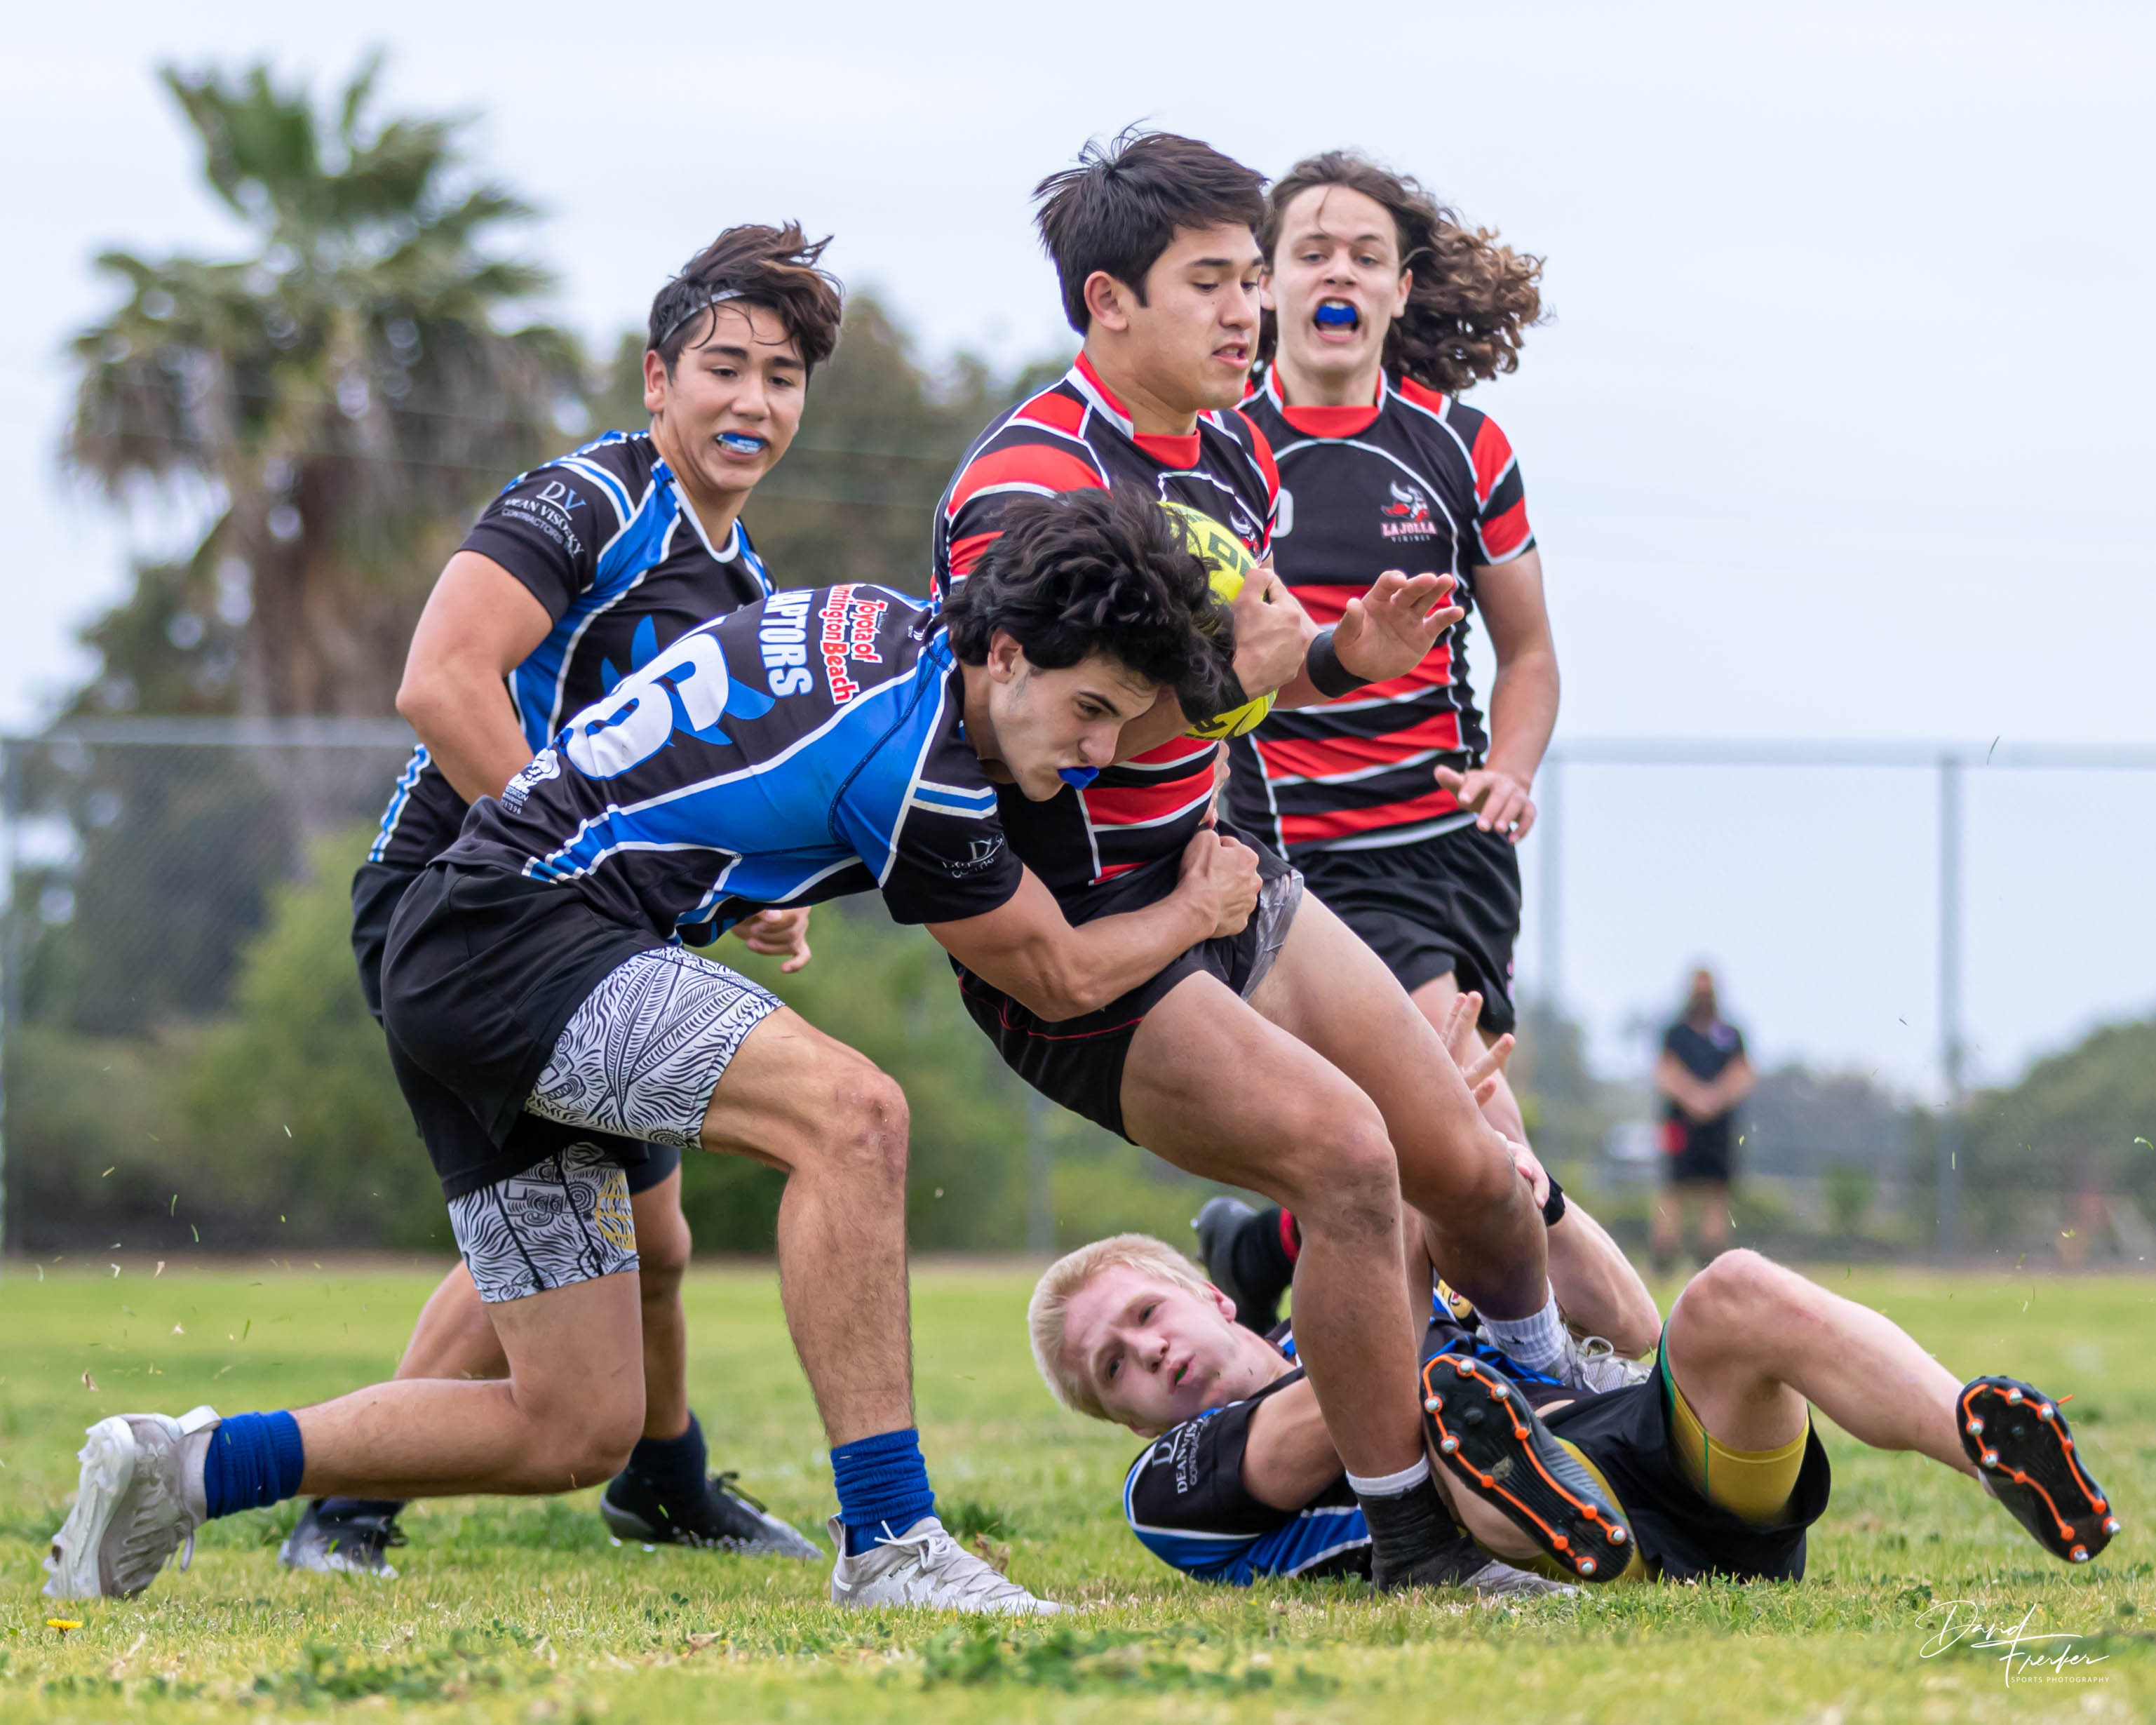 LaJollaRugby52